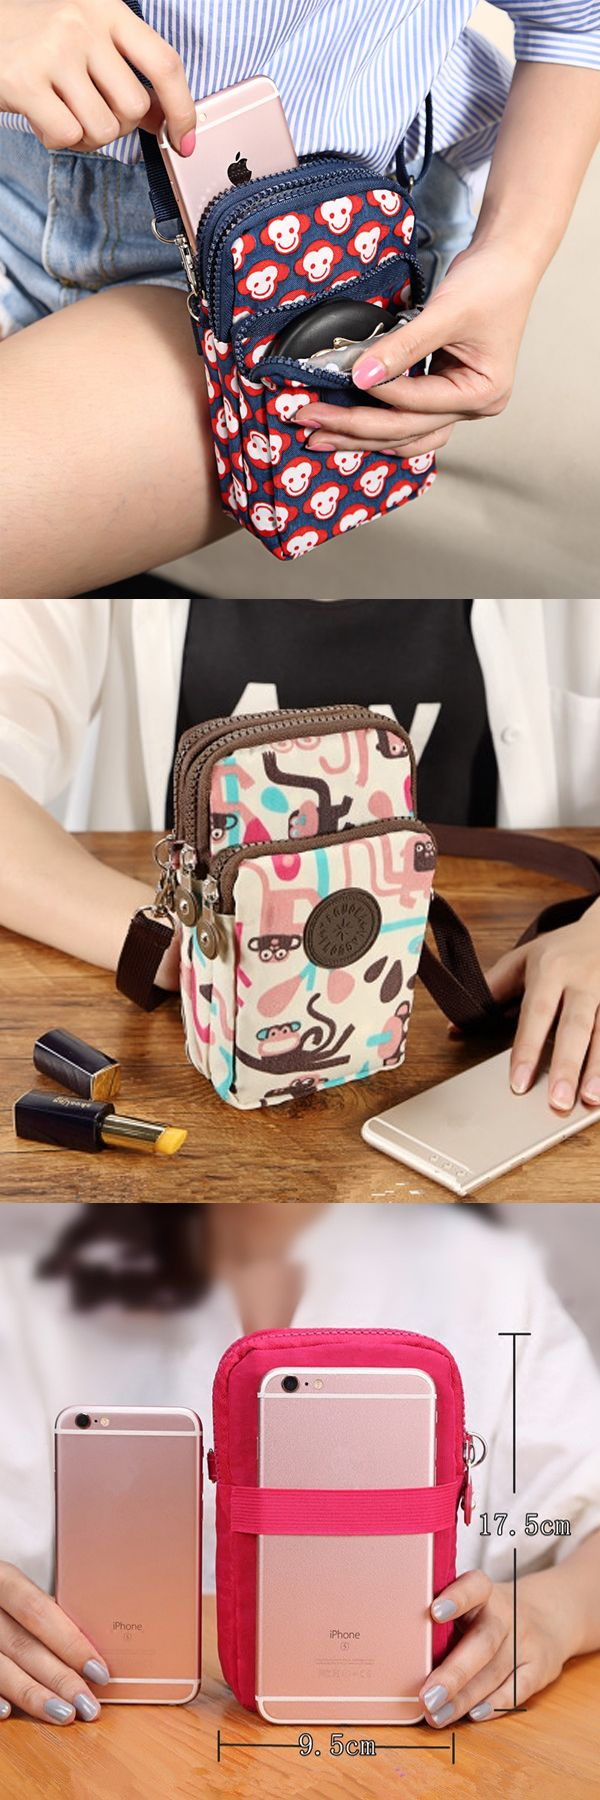 US$7.99. There are three layers to carry smartphones, earphone, cable and other things. With Detachable adjustable strap, can be a shoulder bag, also a arm bag.  Can store two smartphones, also money, cards, keys, cosmetics and so on. It is suitable for travel, sport and other outdoor activities.